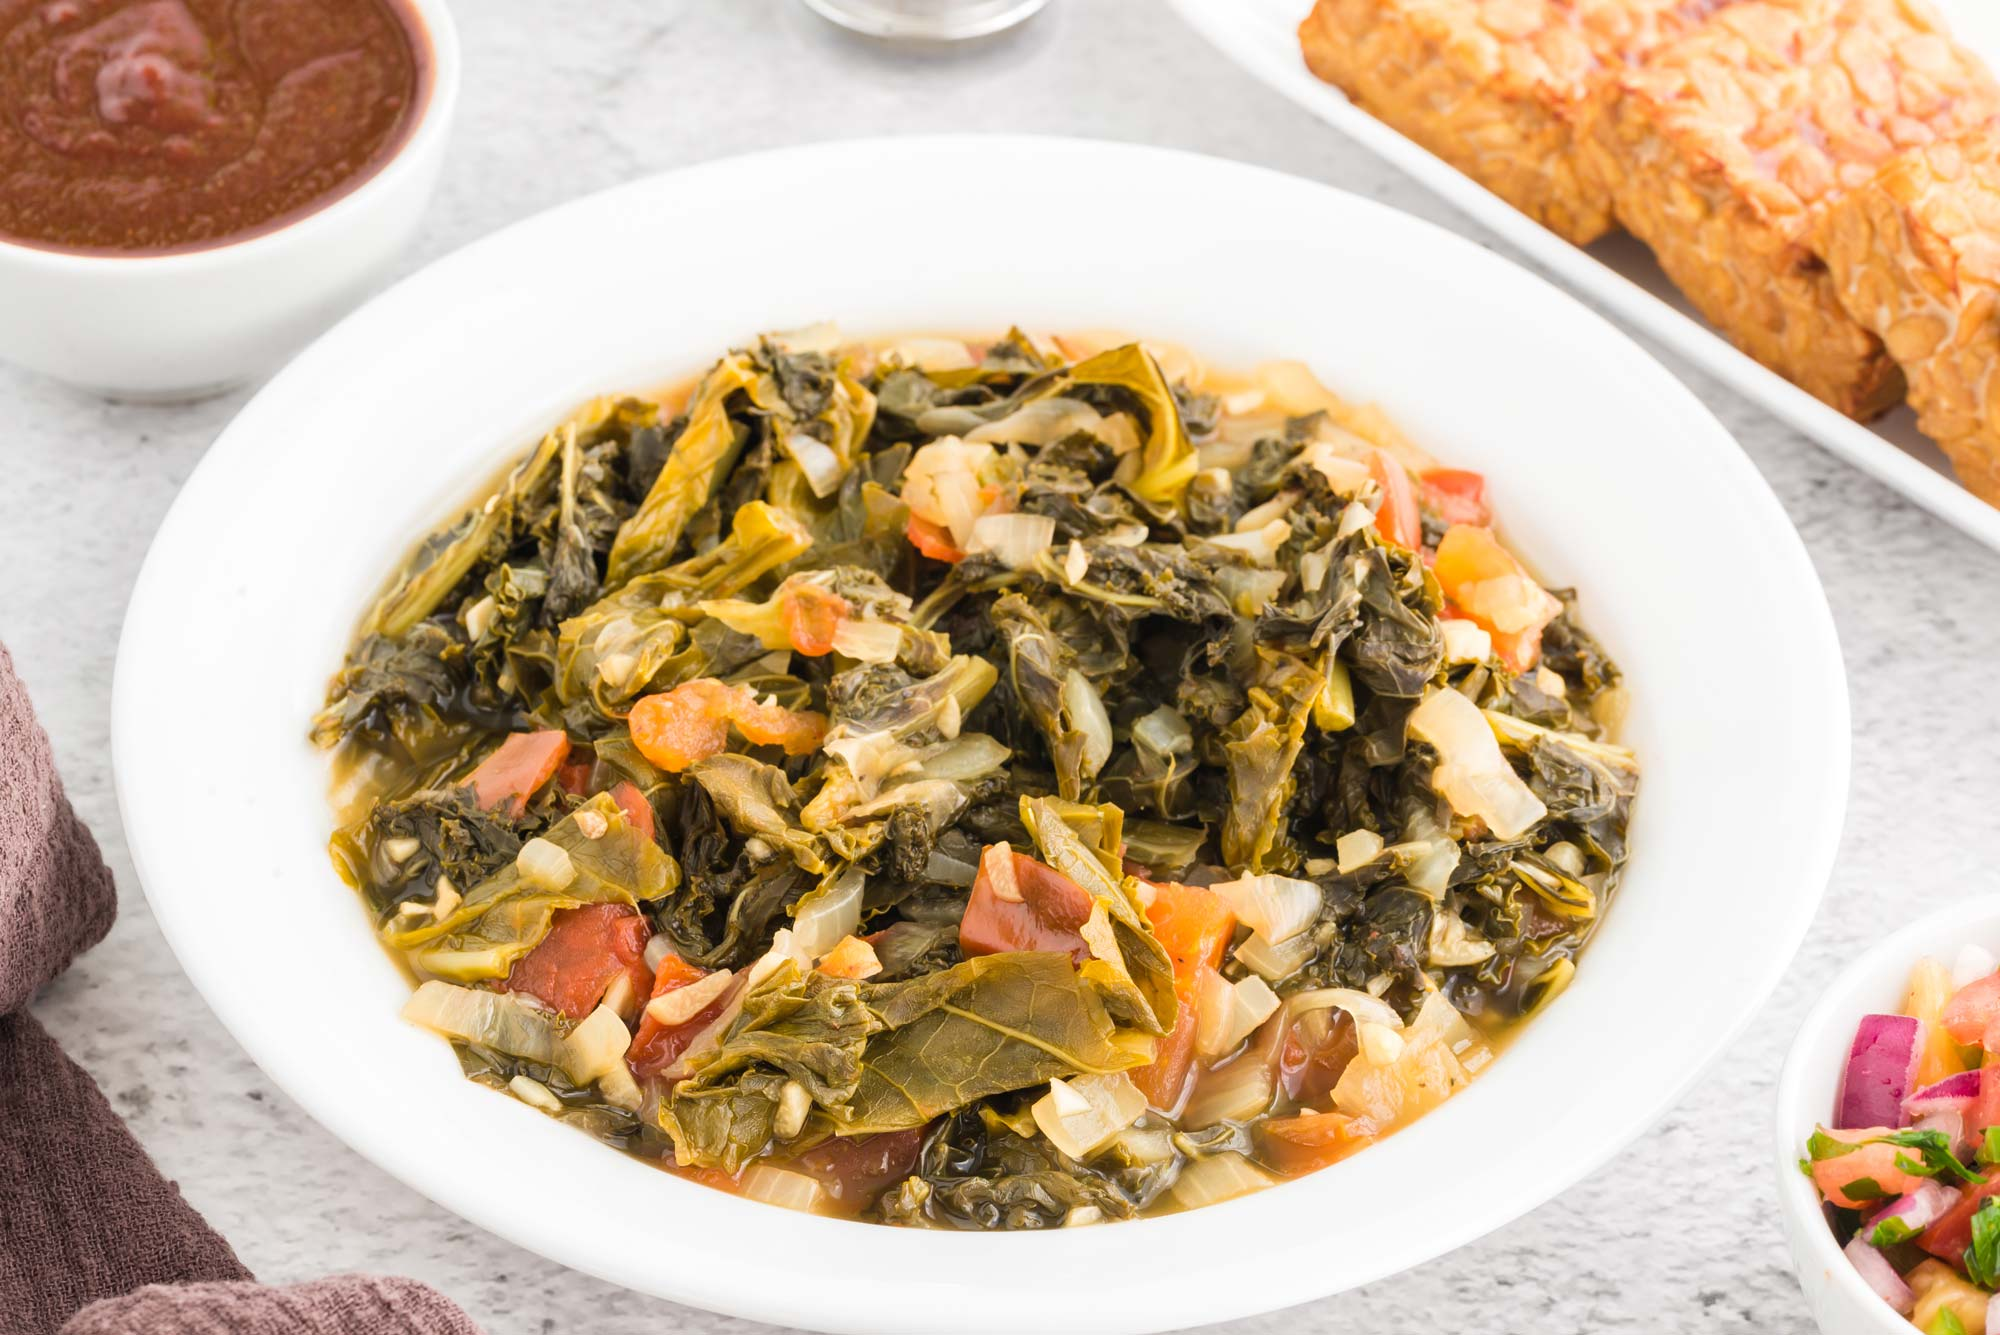 lemony braised kale and tomatoes in bowl